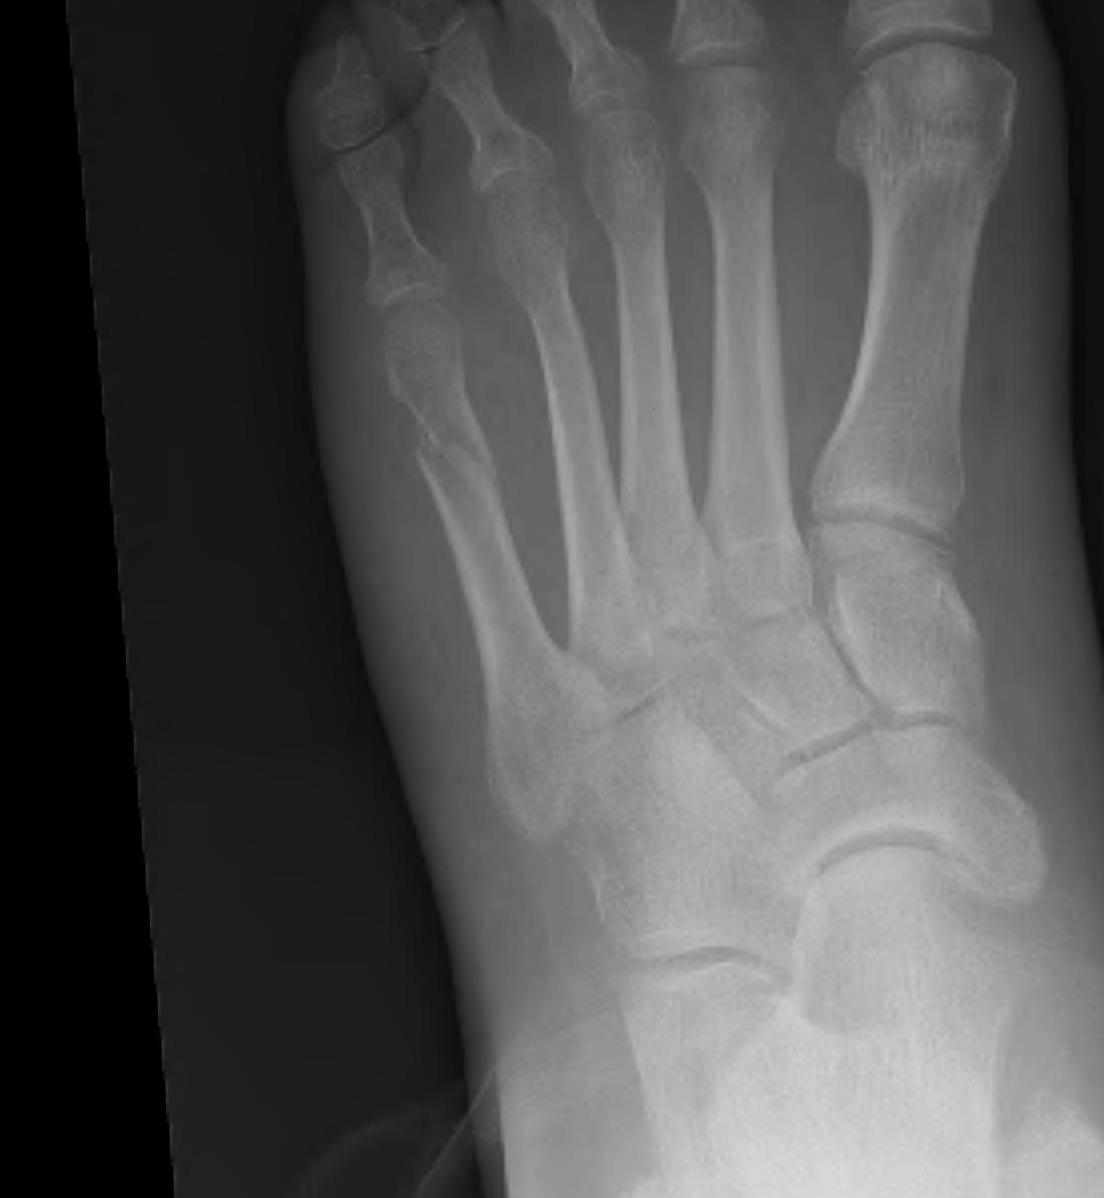 Fifth Metatarsal Neck Fracture